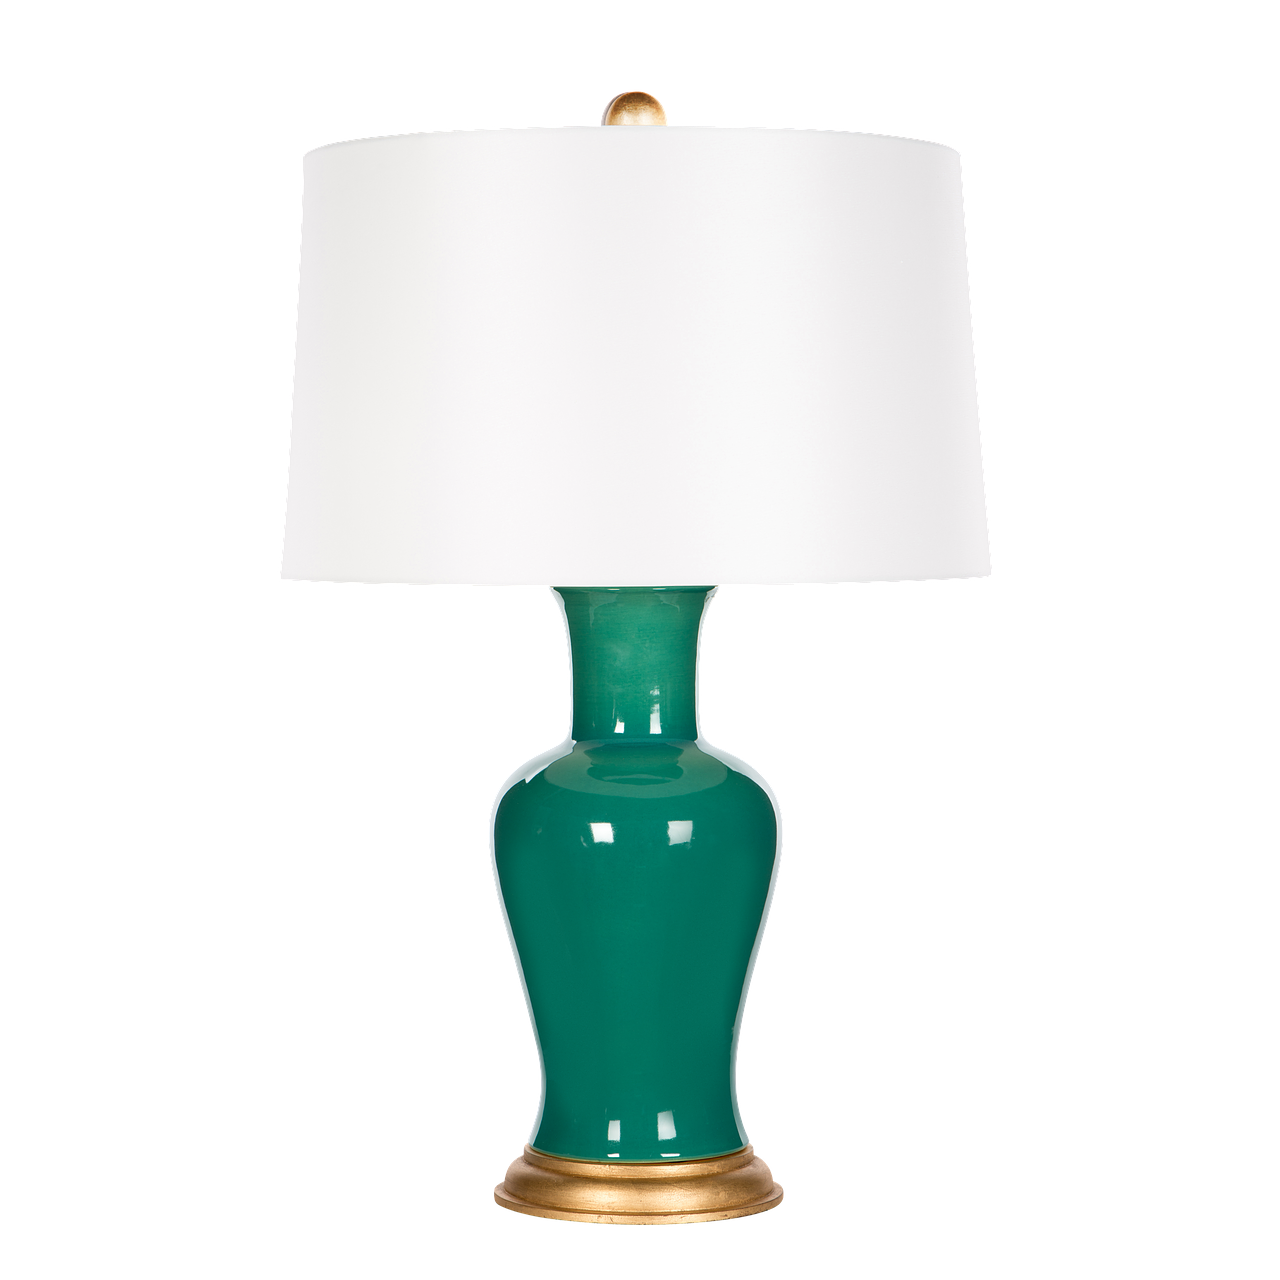 table lamp lamp table lamps lamps clipping path free photo from. Black Bedroom Furniture Sets. Home Design Ideas